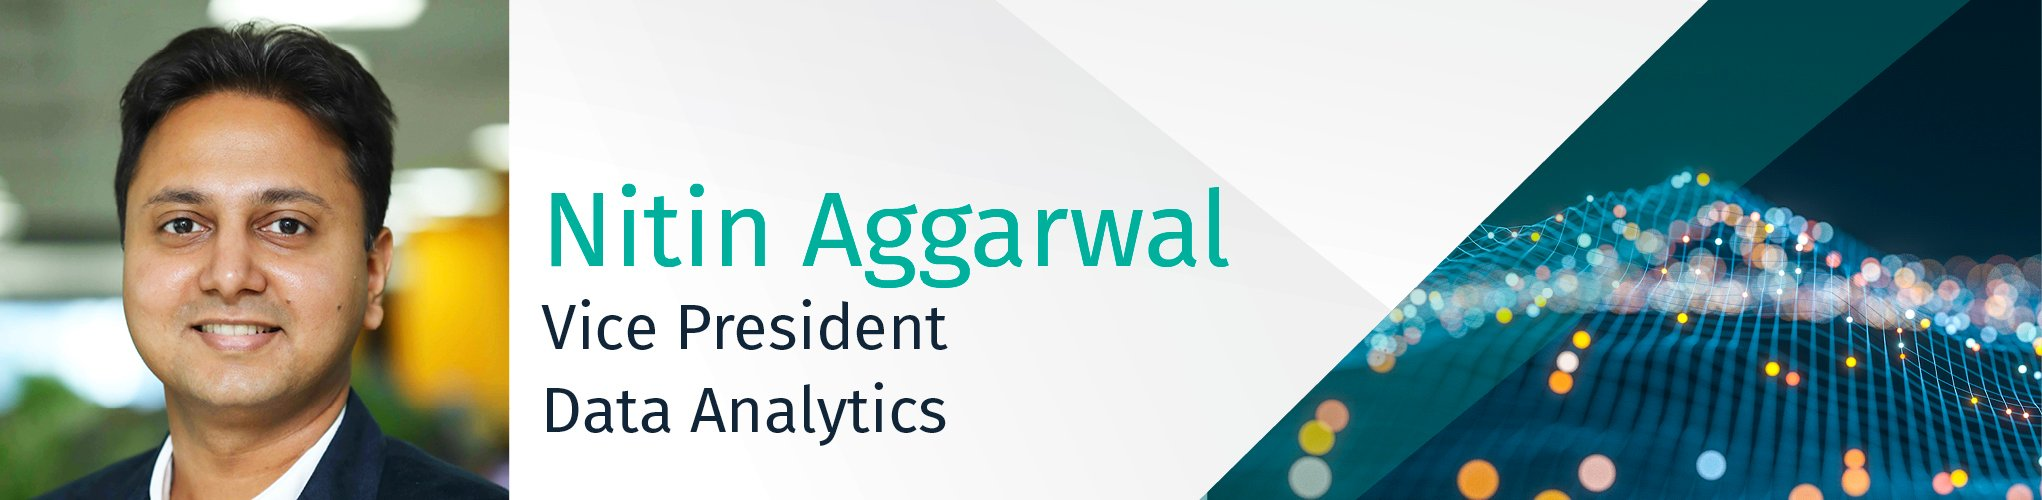 Meet-the-data-scientist_Profile-Box-Nitin-Aggarwal_2020-01-28